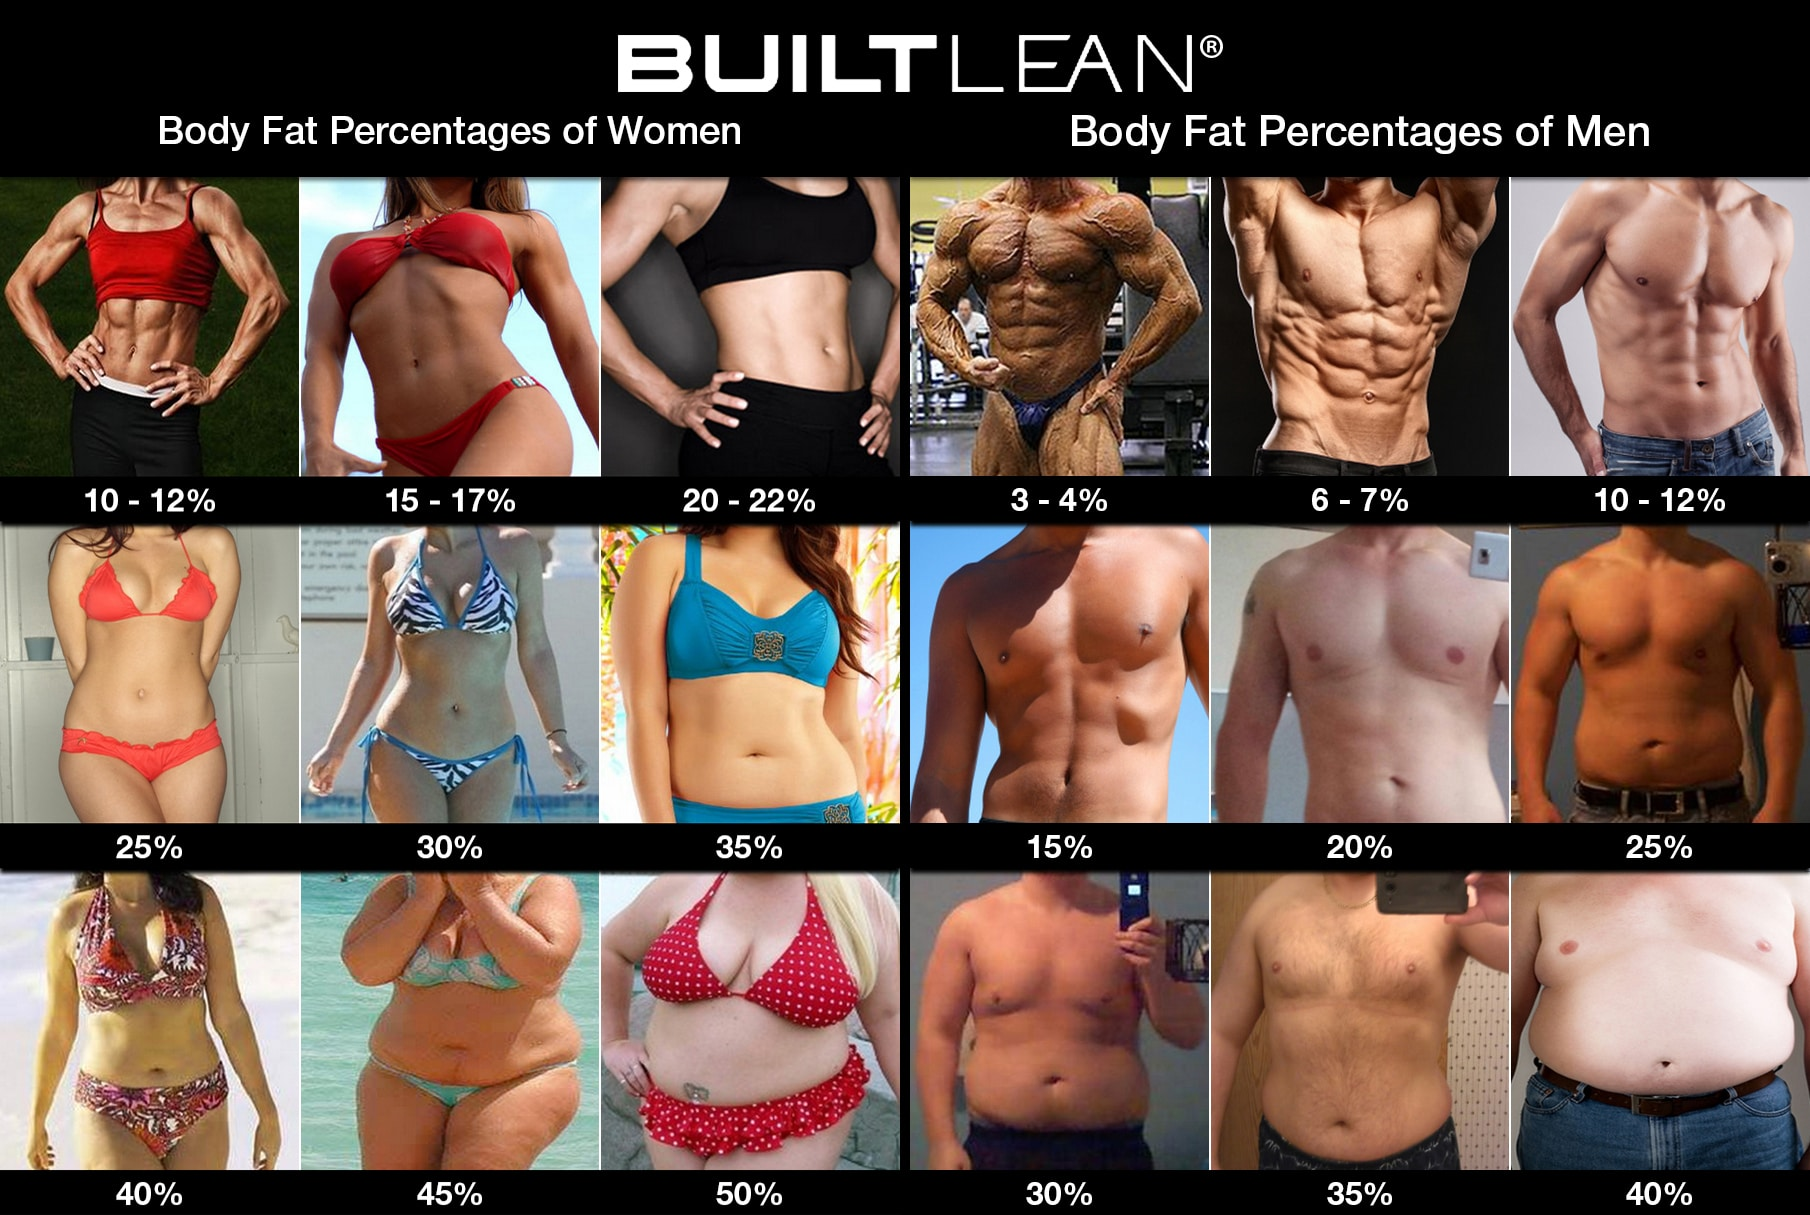 body fat percentage picture men women Body Fat Percentage Pictures Of Men & Women